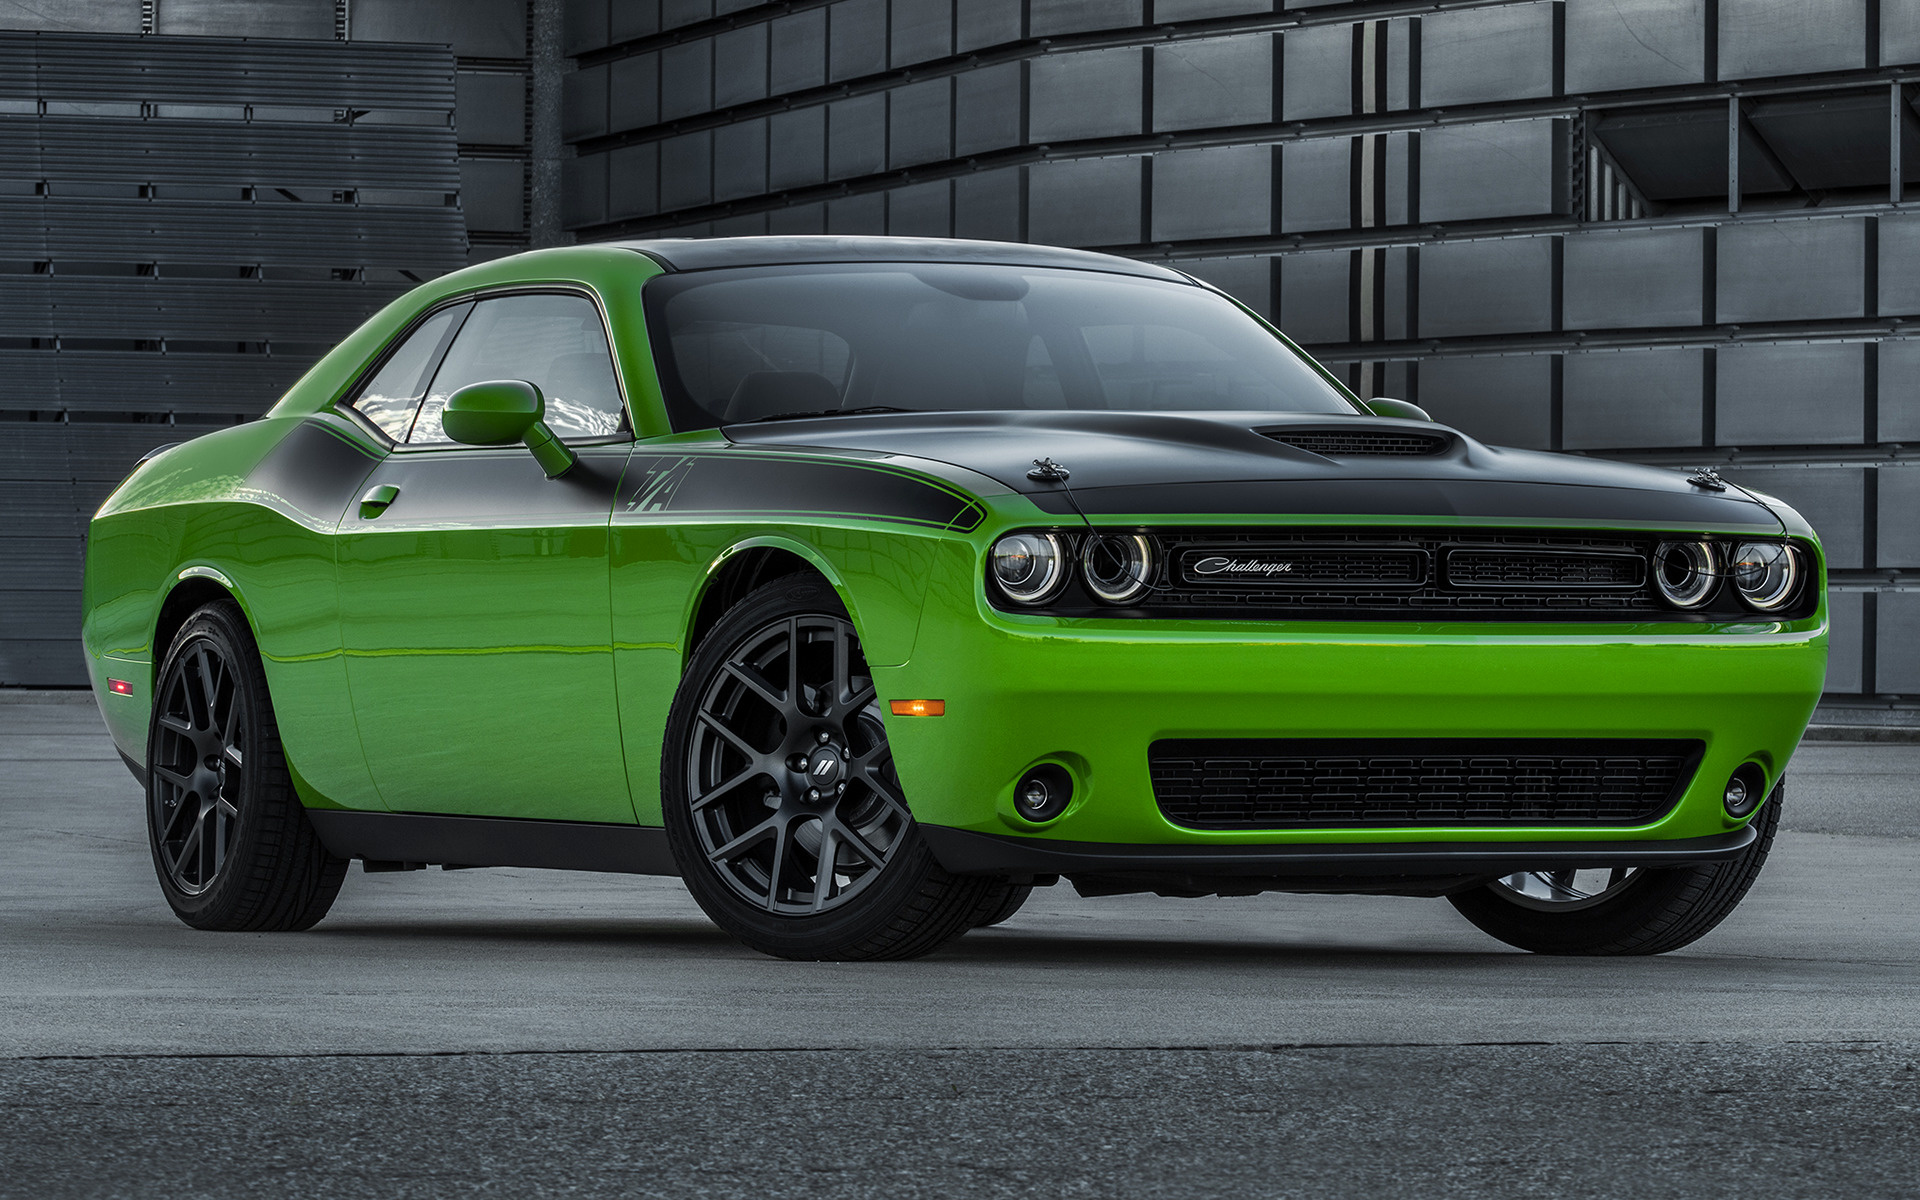 Dodge Challenger T/A (2017) Wallpapers and HD Images - Car Pixel